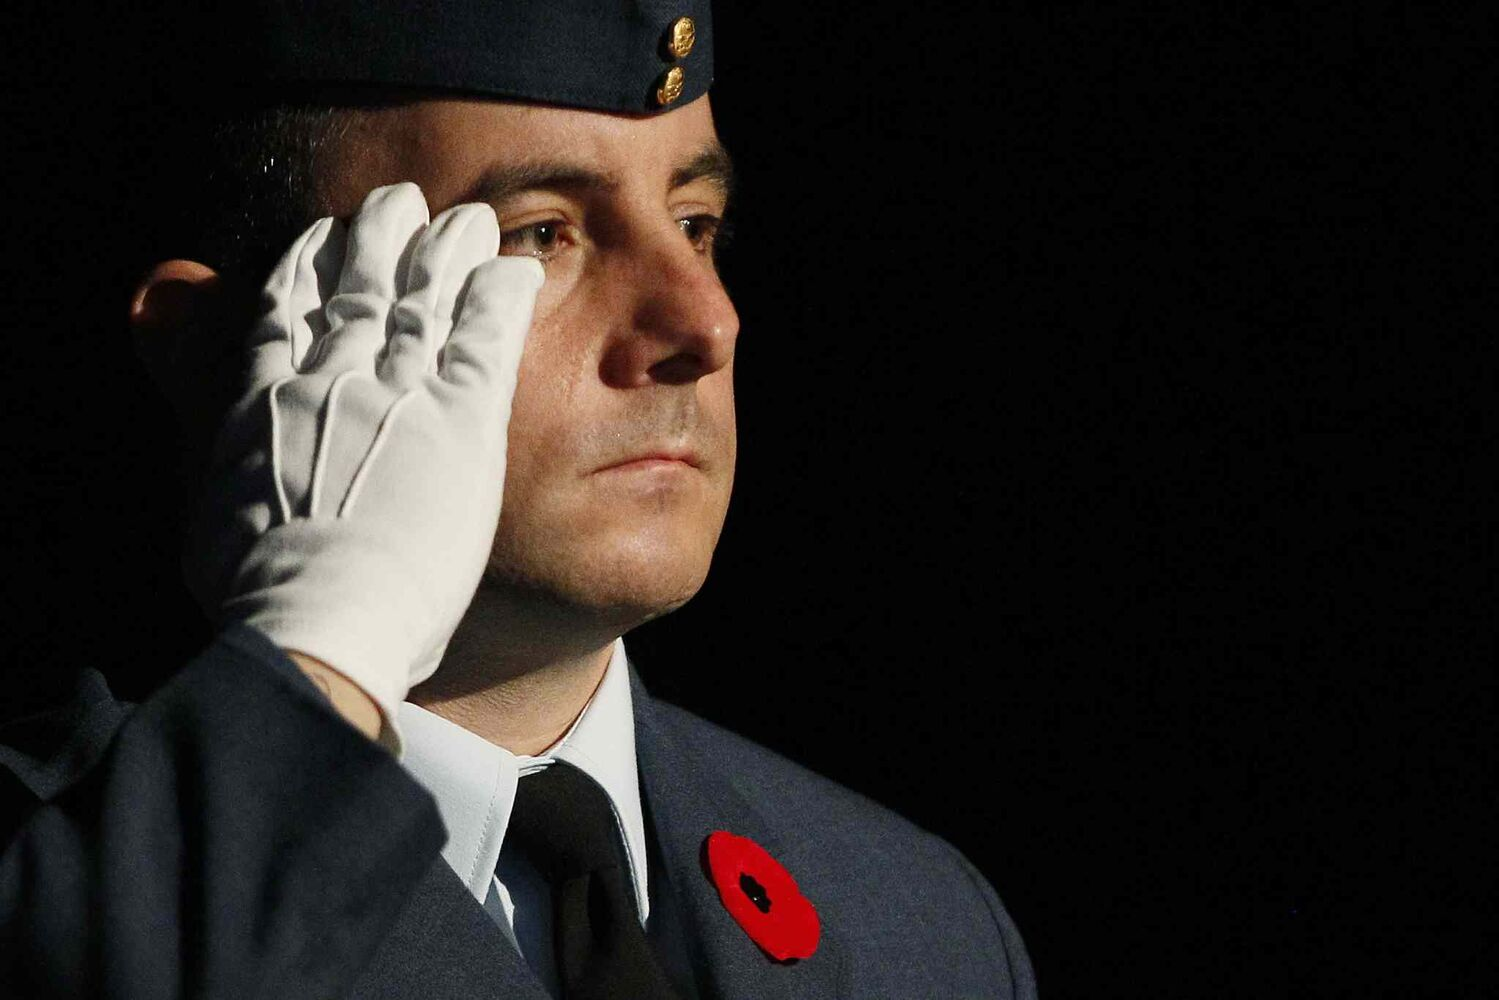 A soldier salutes during The Last Post at the Remembrance Day service at the RBC Convention Centre Winnipeg. (JOHN WOODS / THE CANADIAN PRESS)